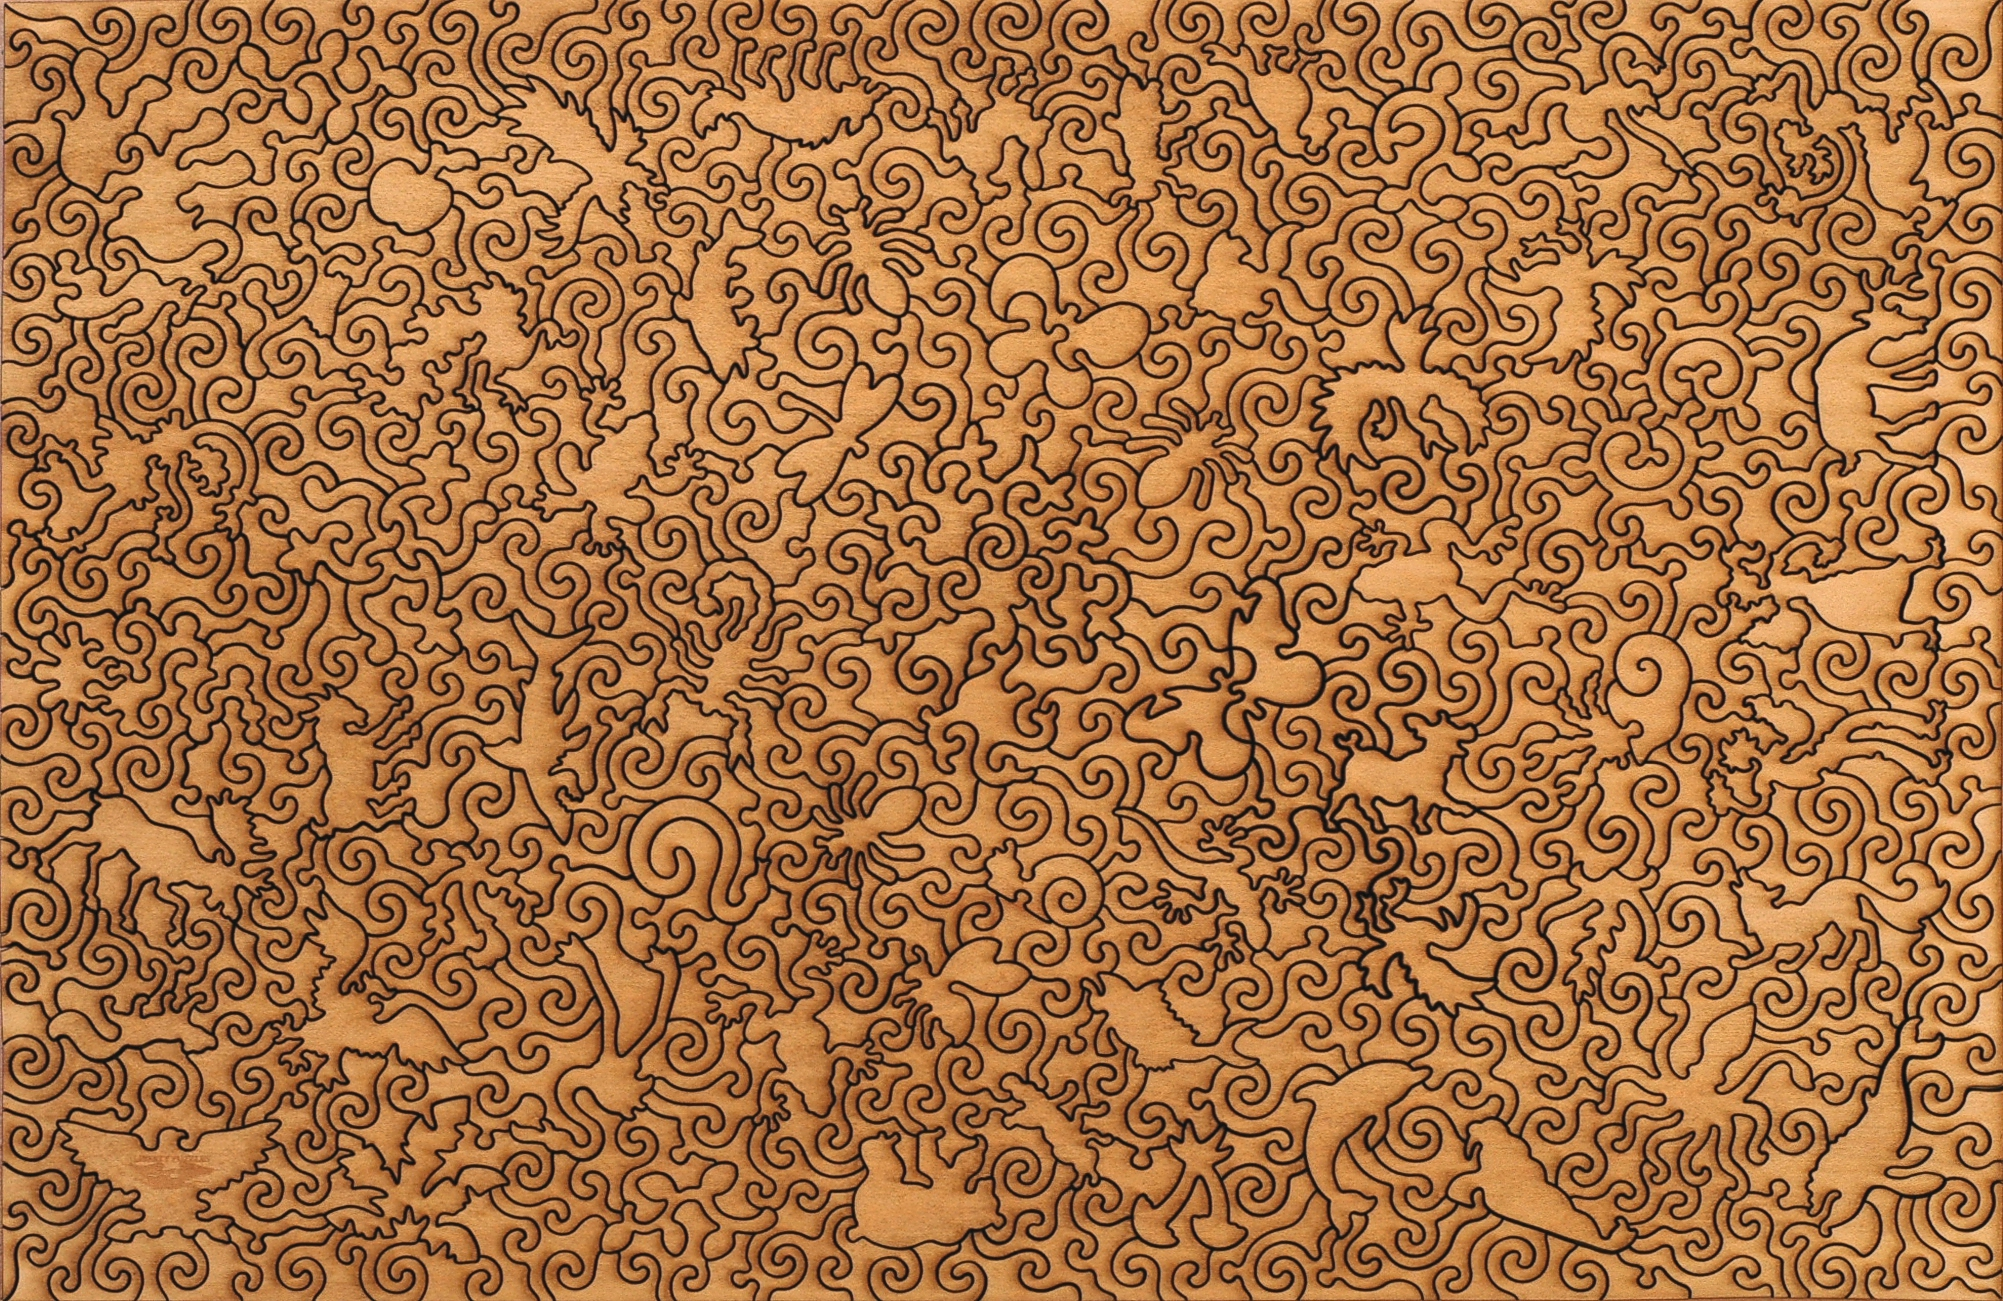 Klimt Tree of Life - Wooden Jigsaw Puzzle - Liberty Puzzles - Made ...